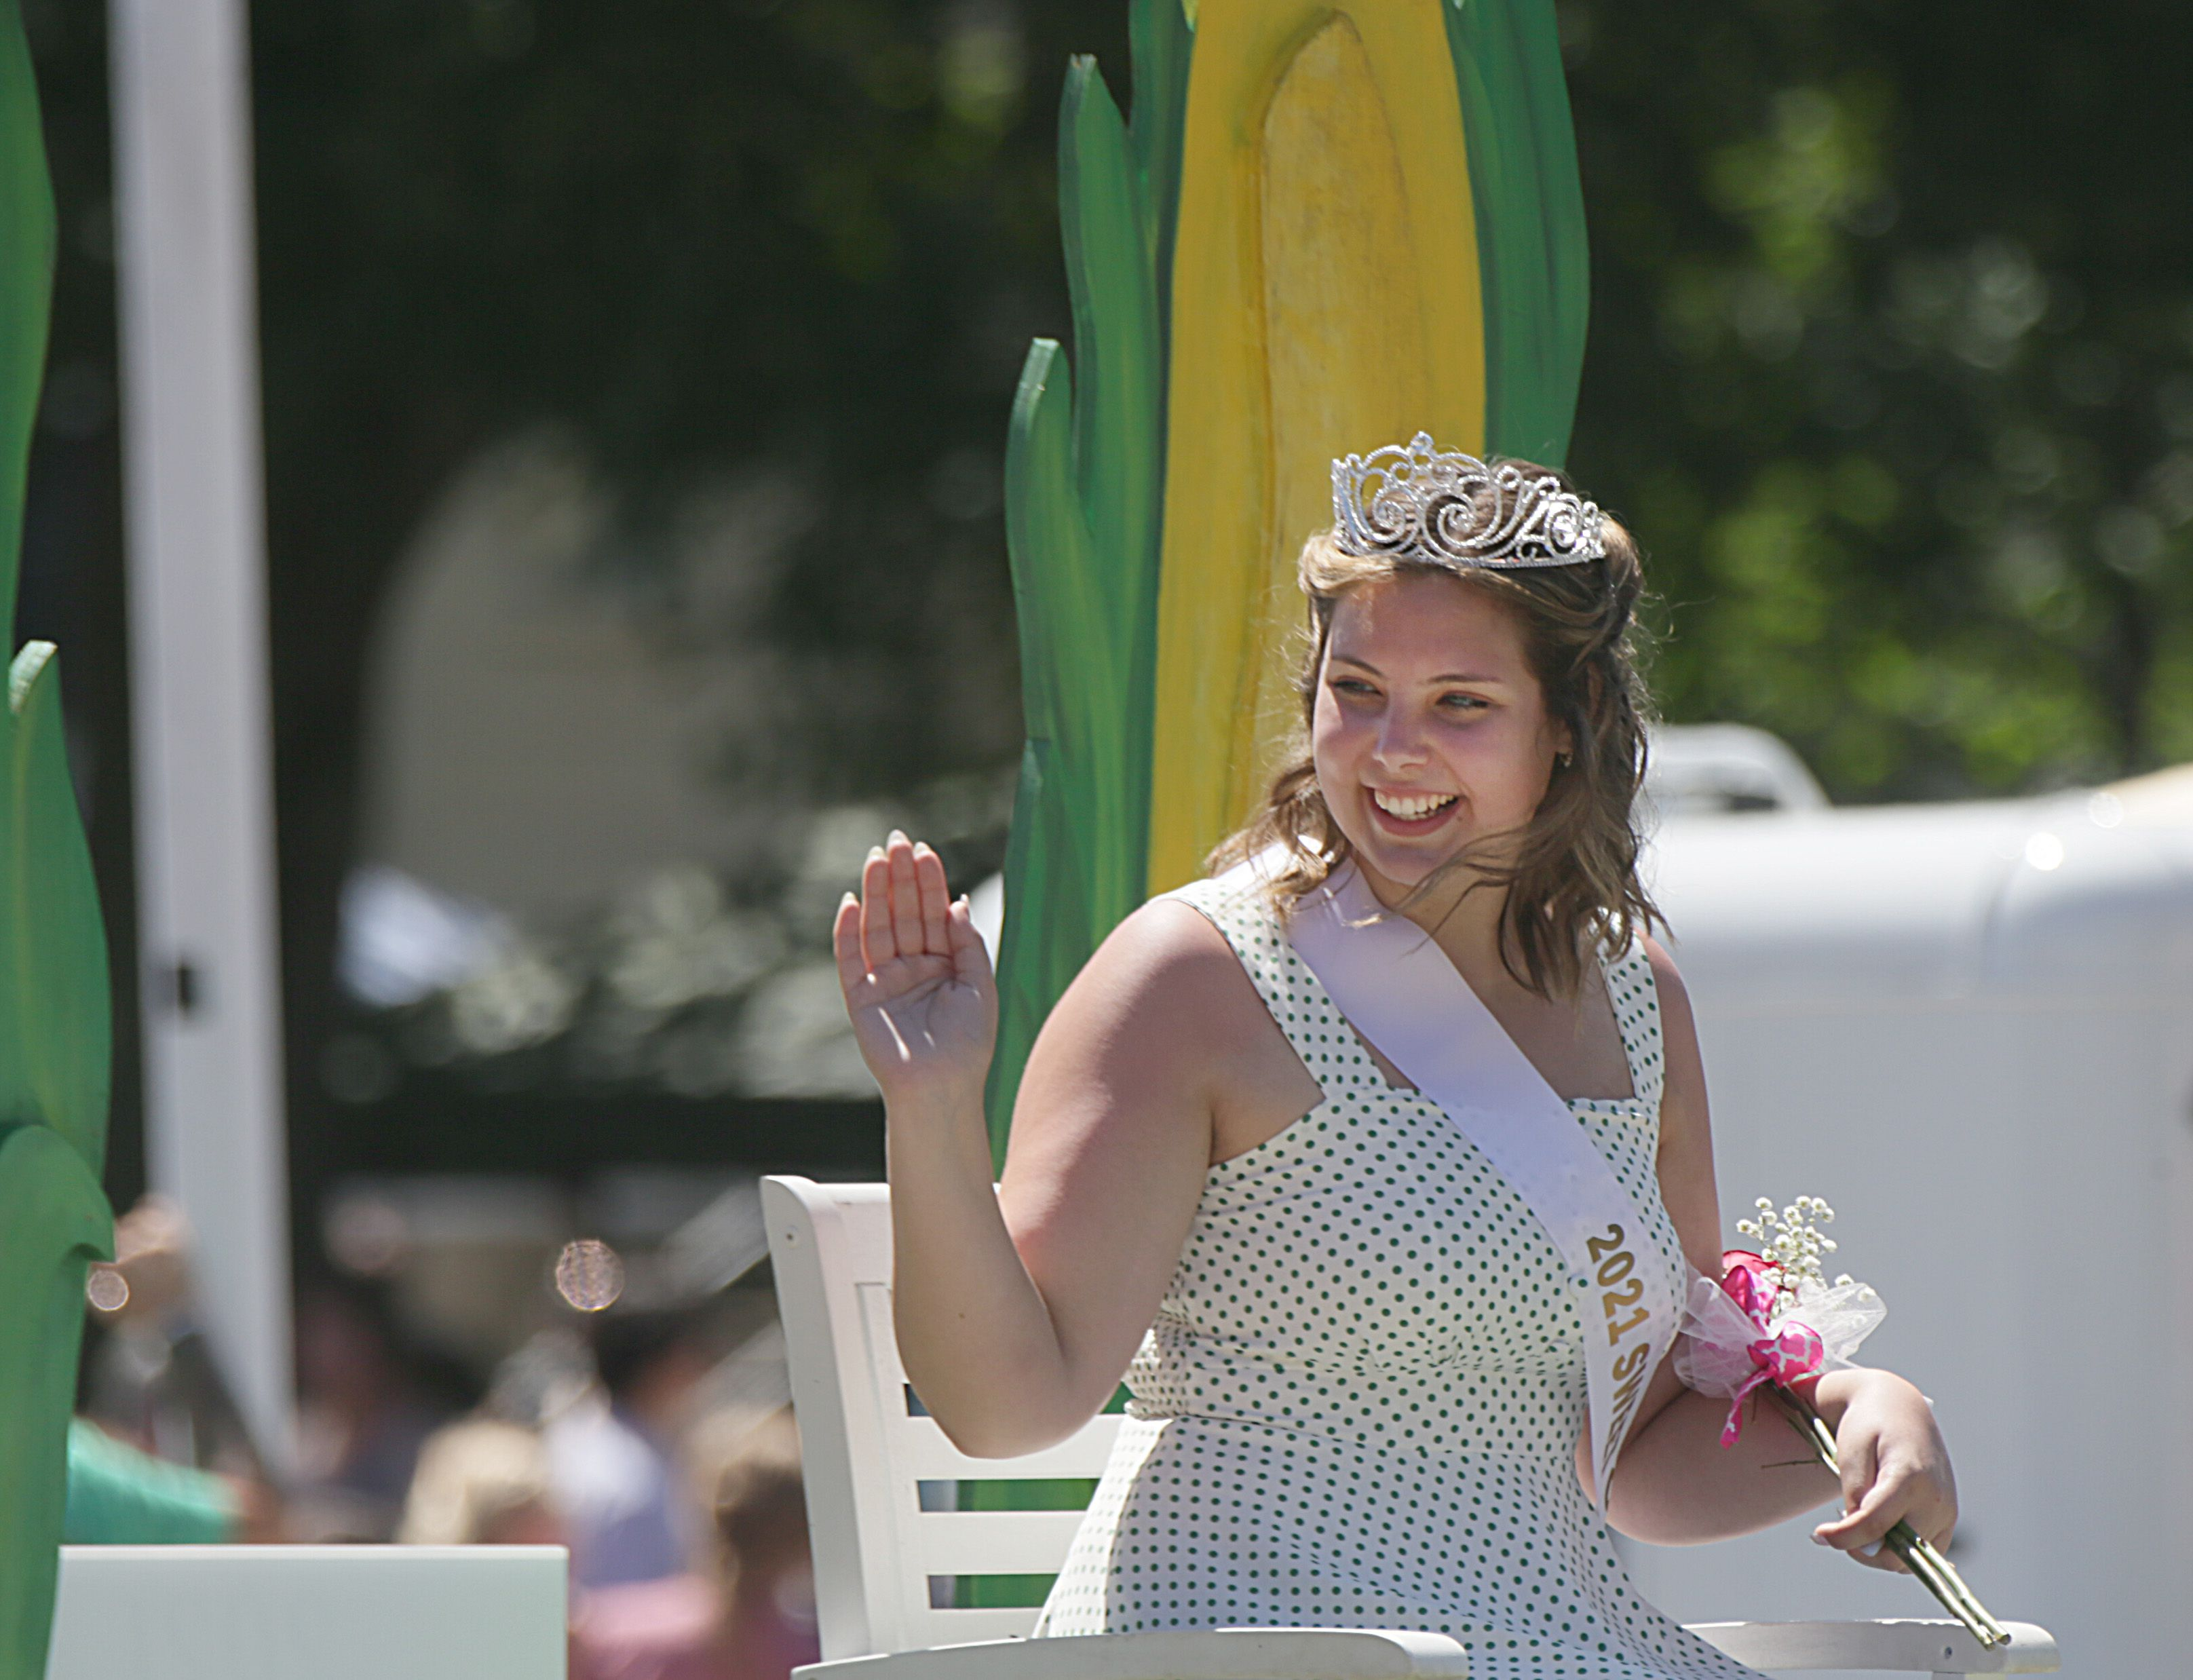 The 2021 Mendota Sweet Corn queen Parris Stachlewitz waves to the crowd Sunday, Aug. 15, 2021, during the 74th annual Sweet Corn Parade in Mendota.